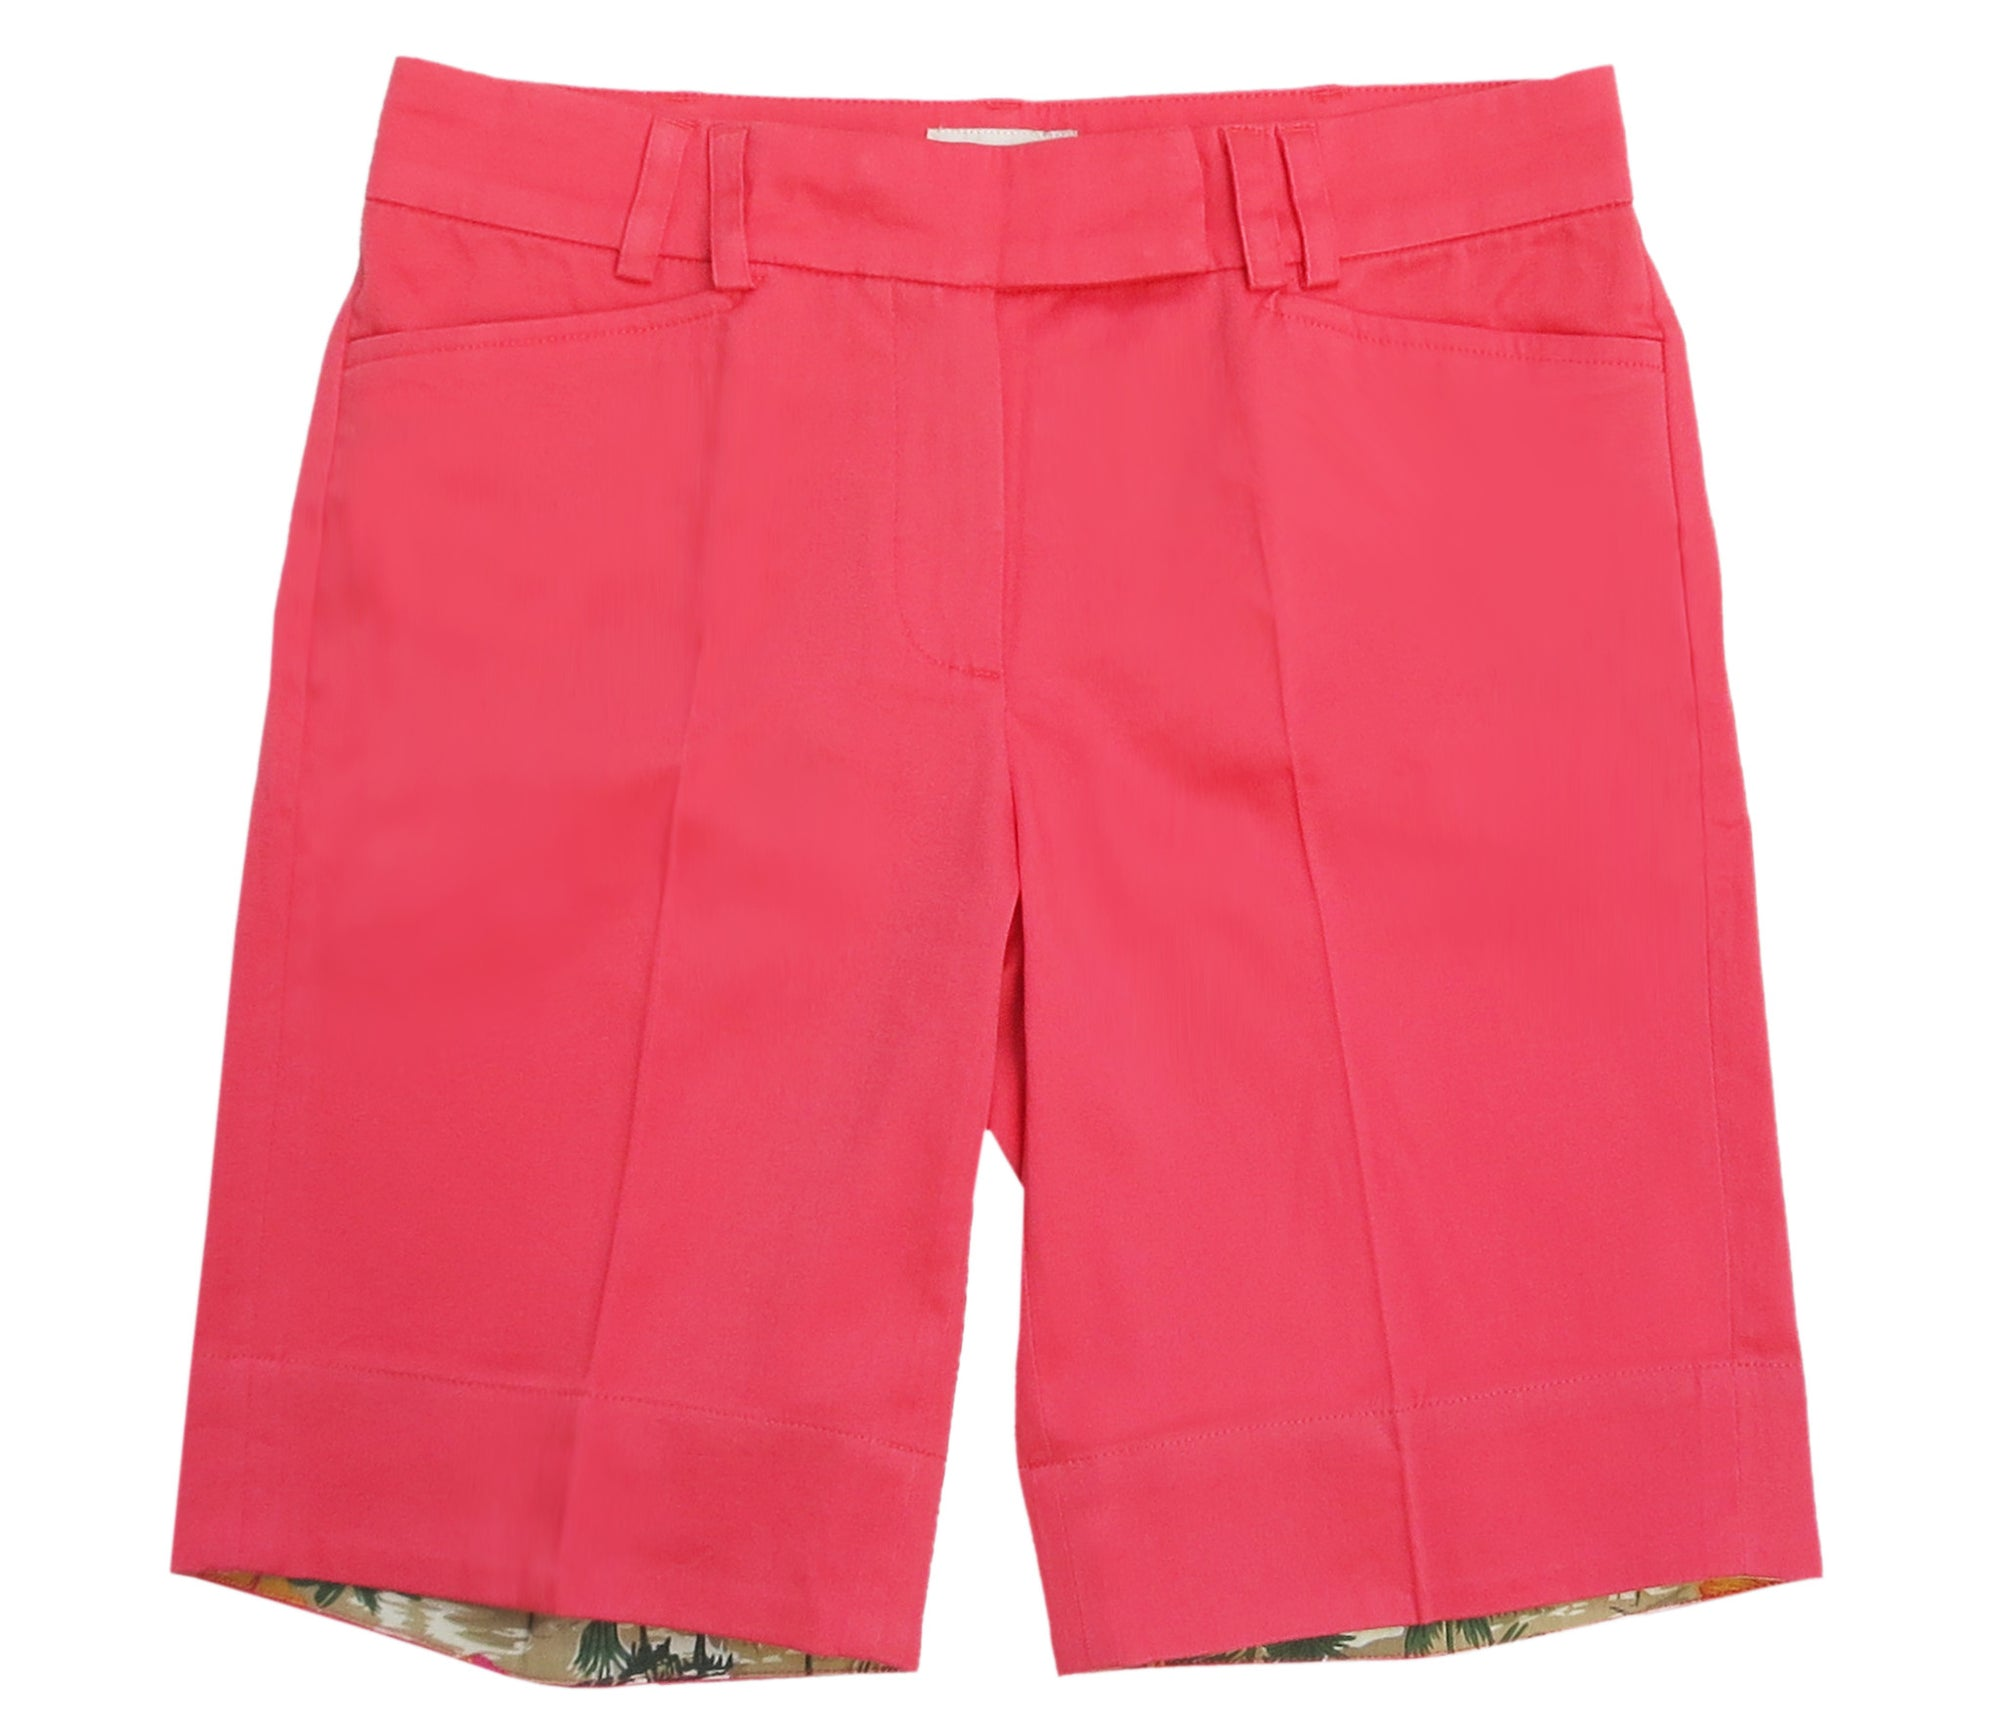 TABS Women Bermuda Shorts, coral, front long